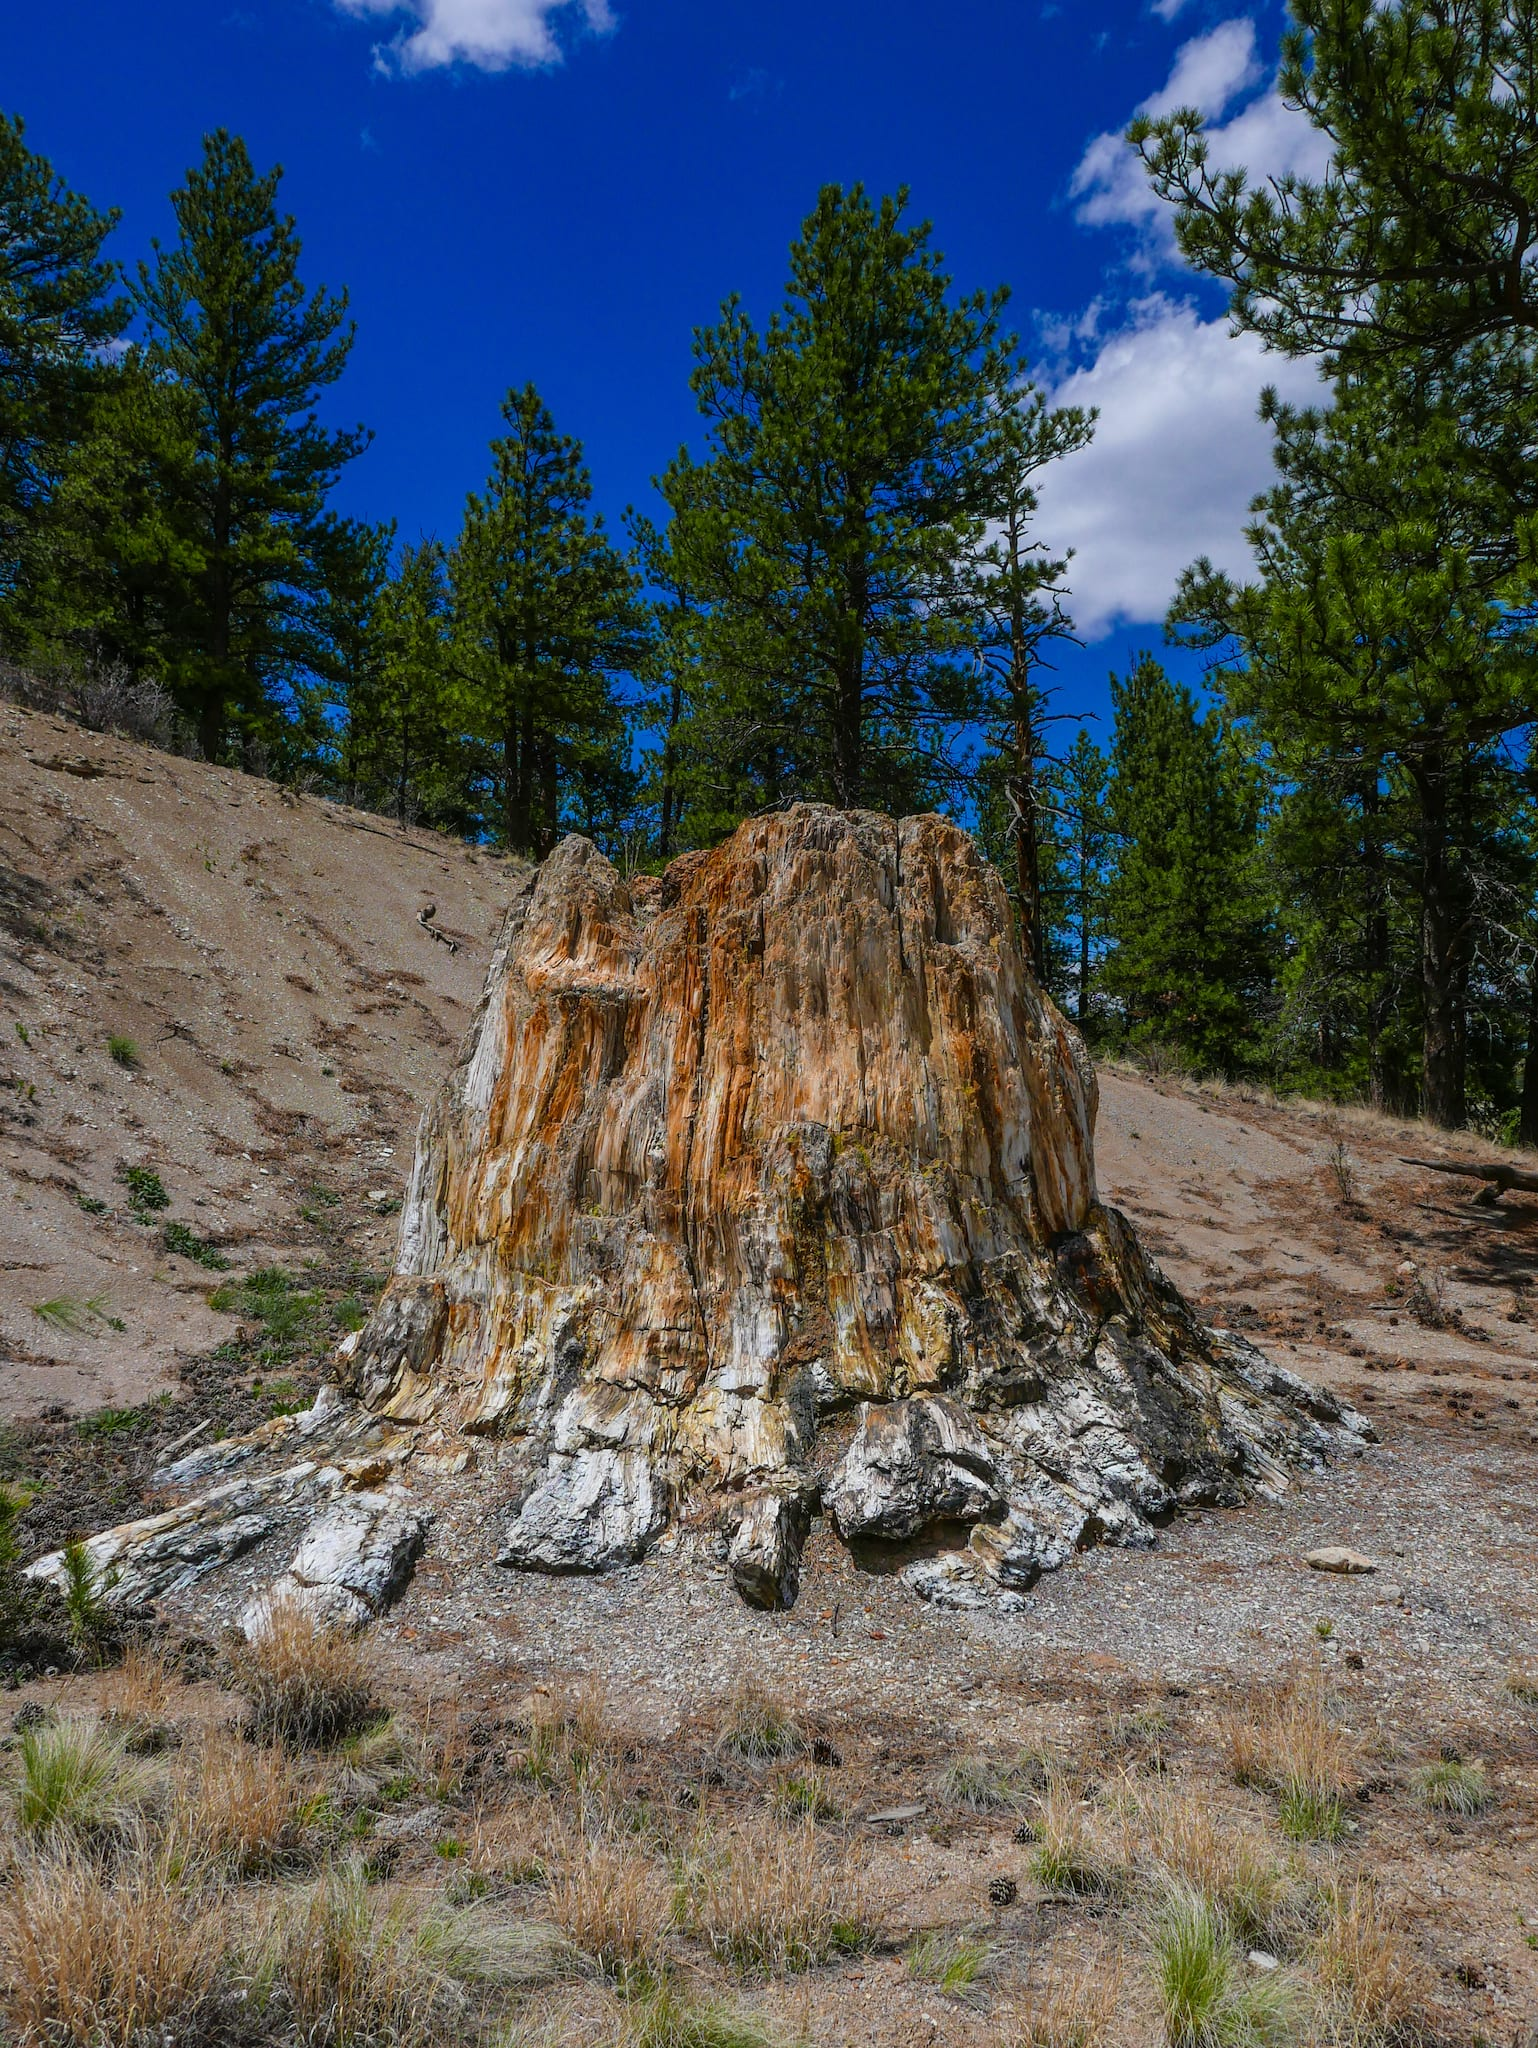 Florissant Fossil Beds National Monument Petrified Tree Stump